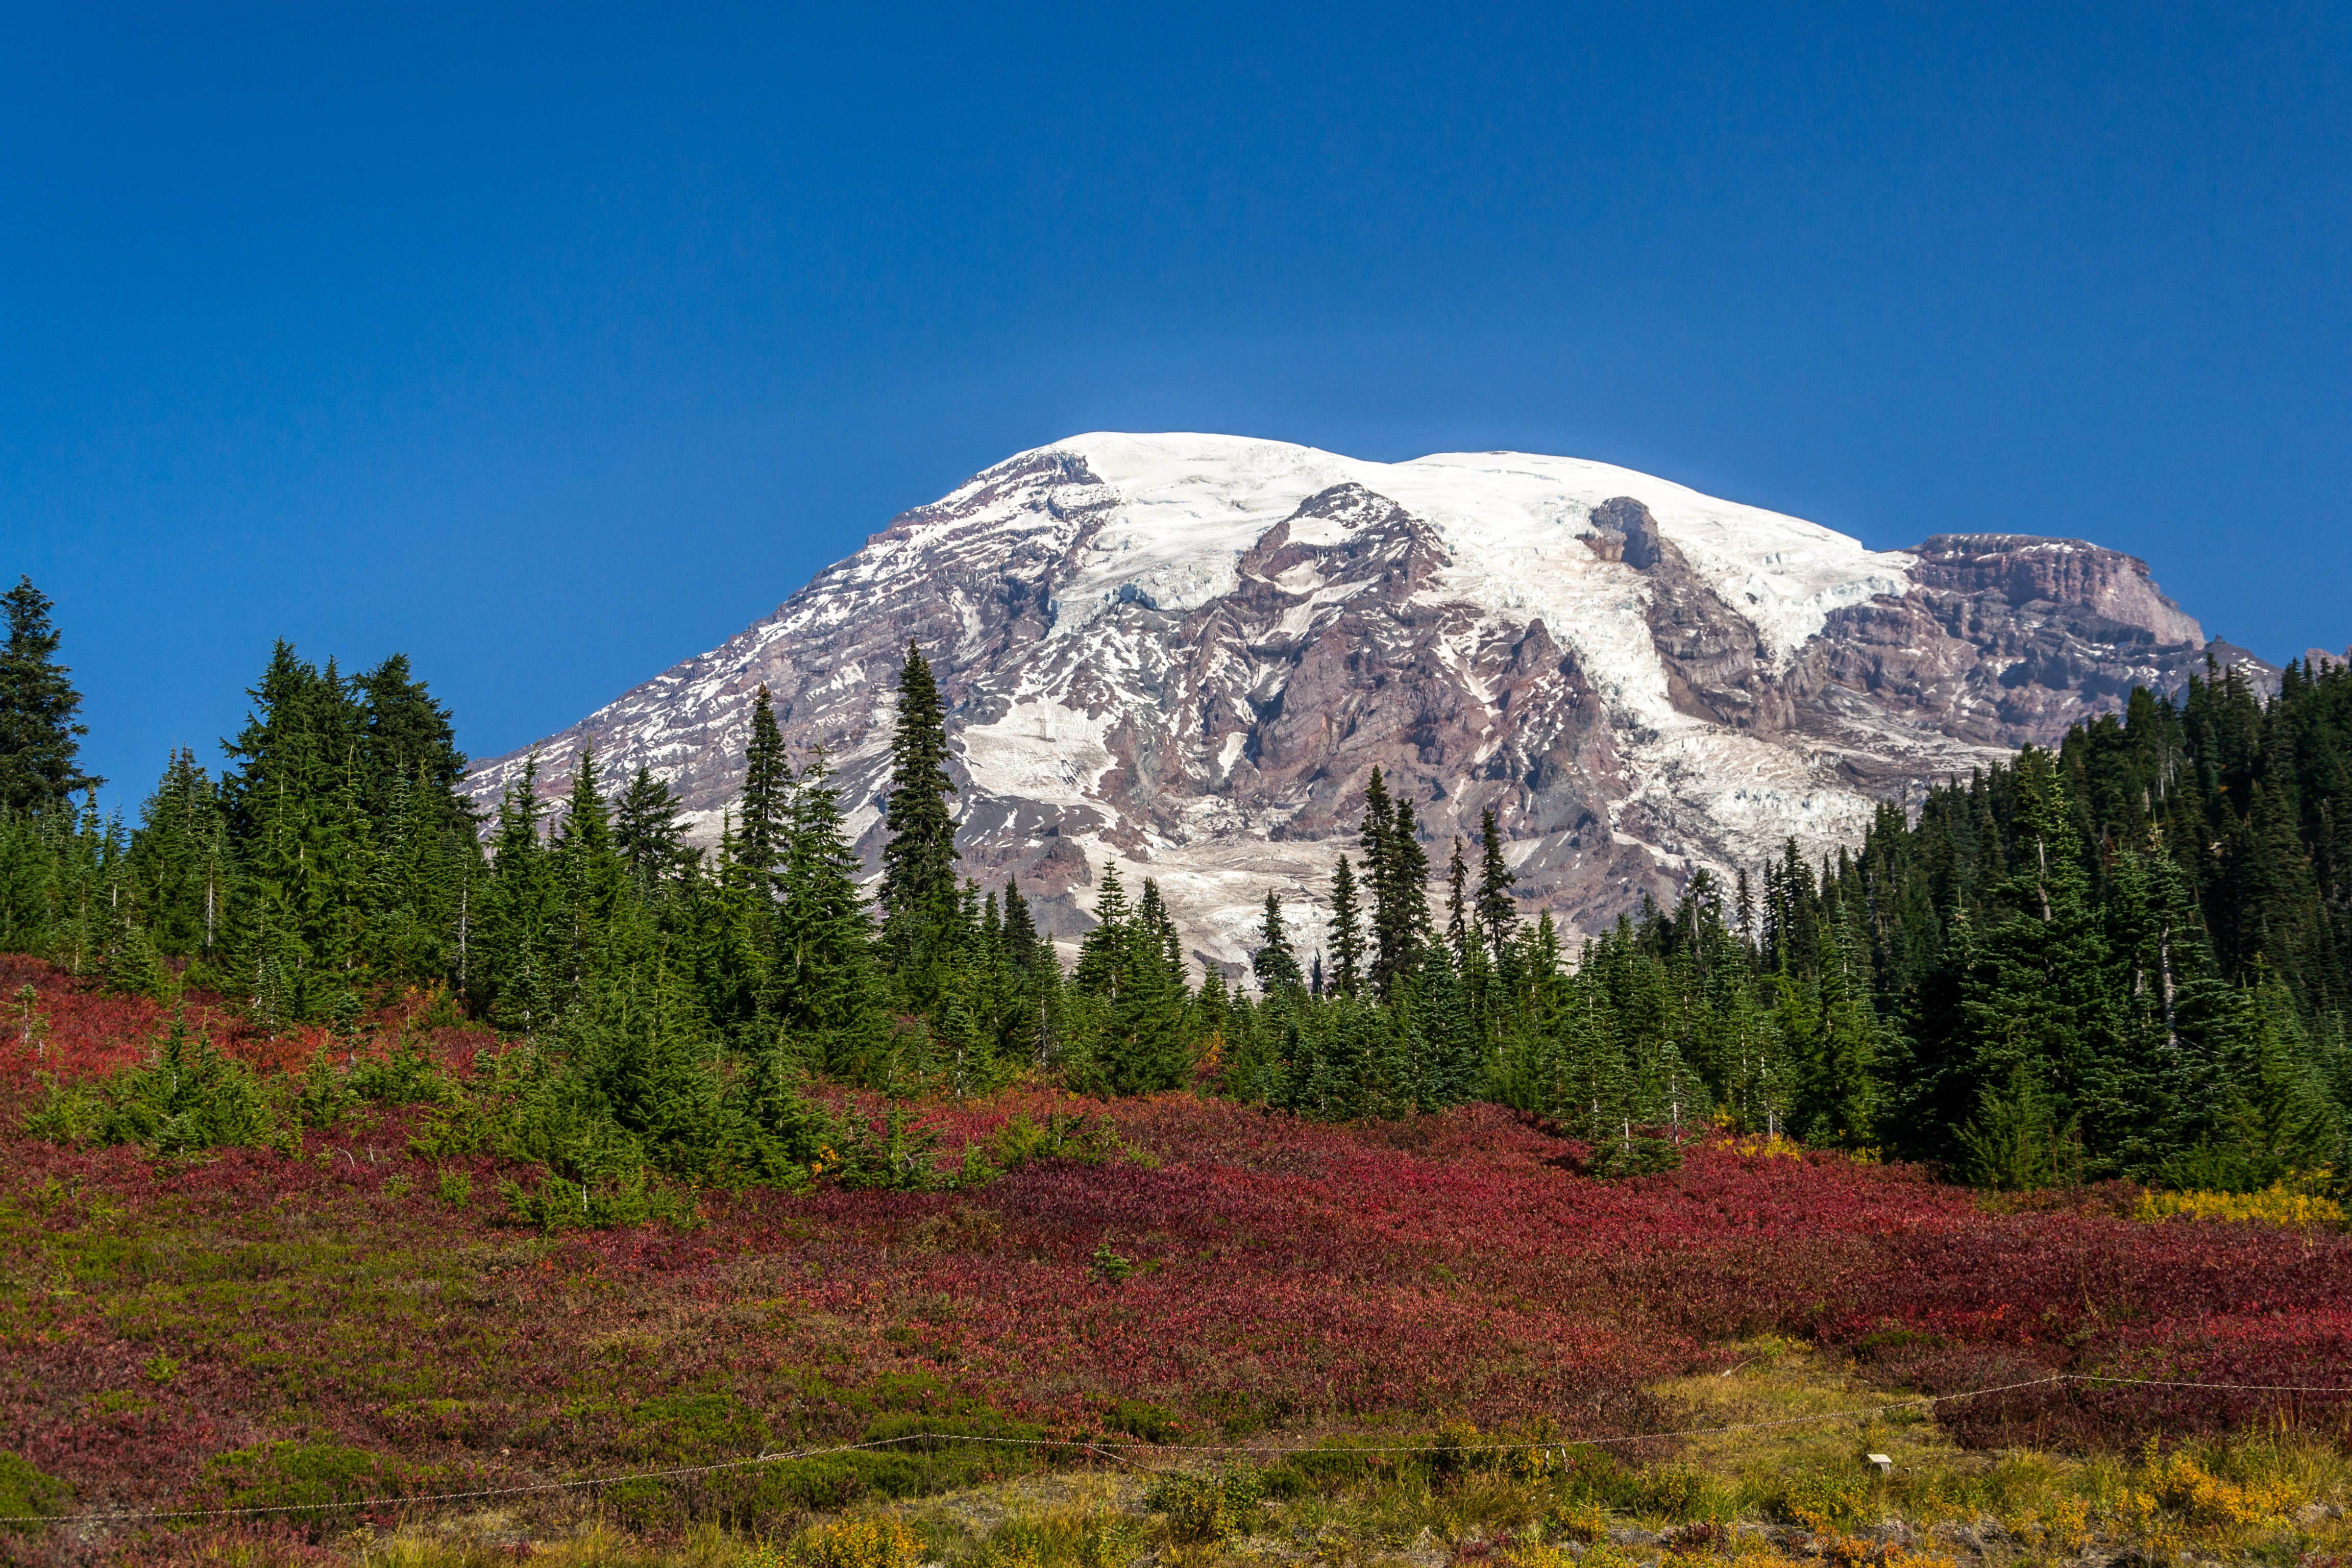 A red meadow and an evergreen forest at the foot of a snowy mountain